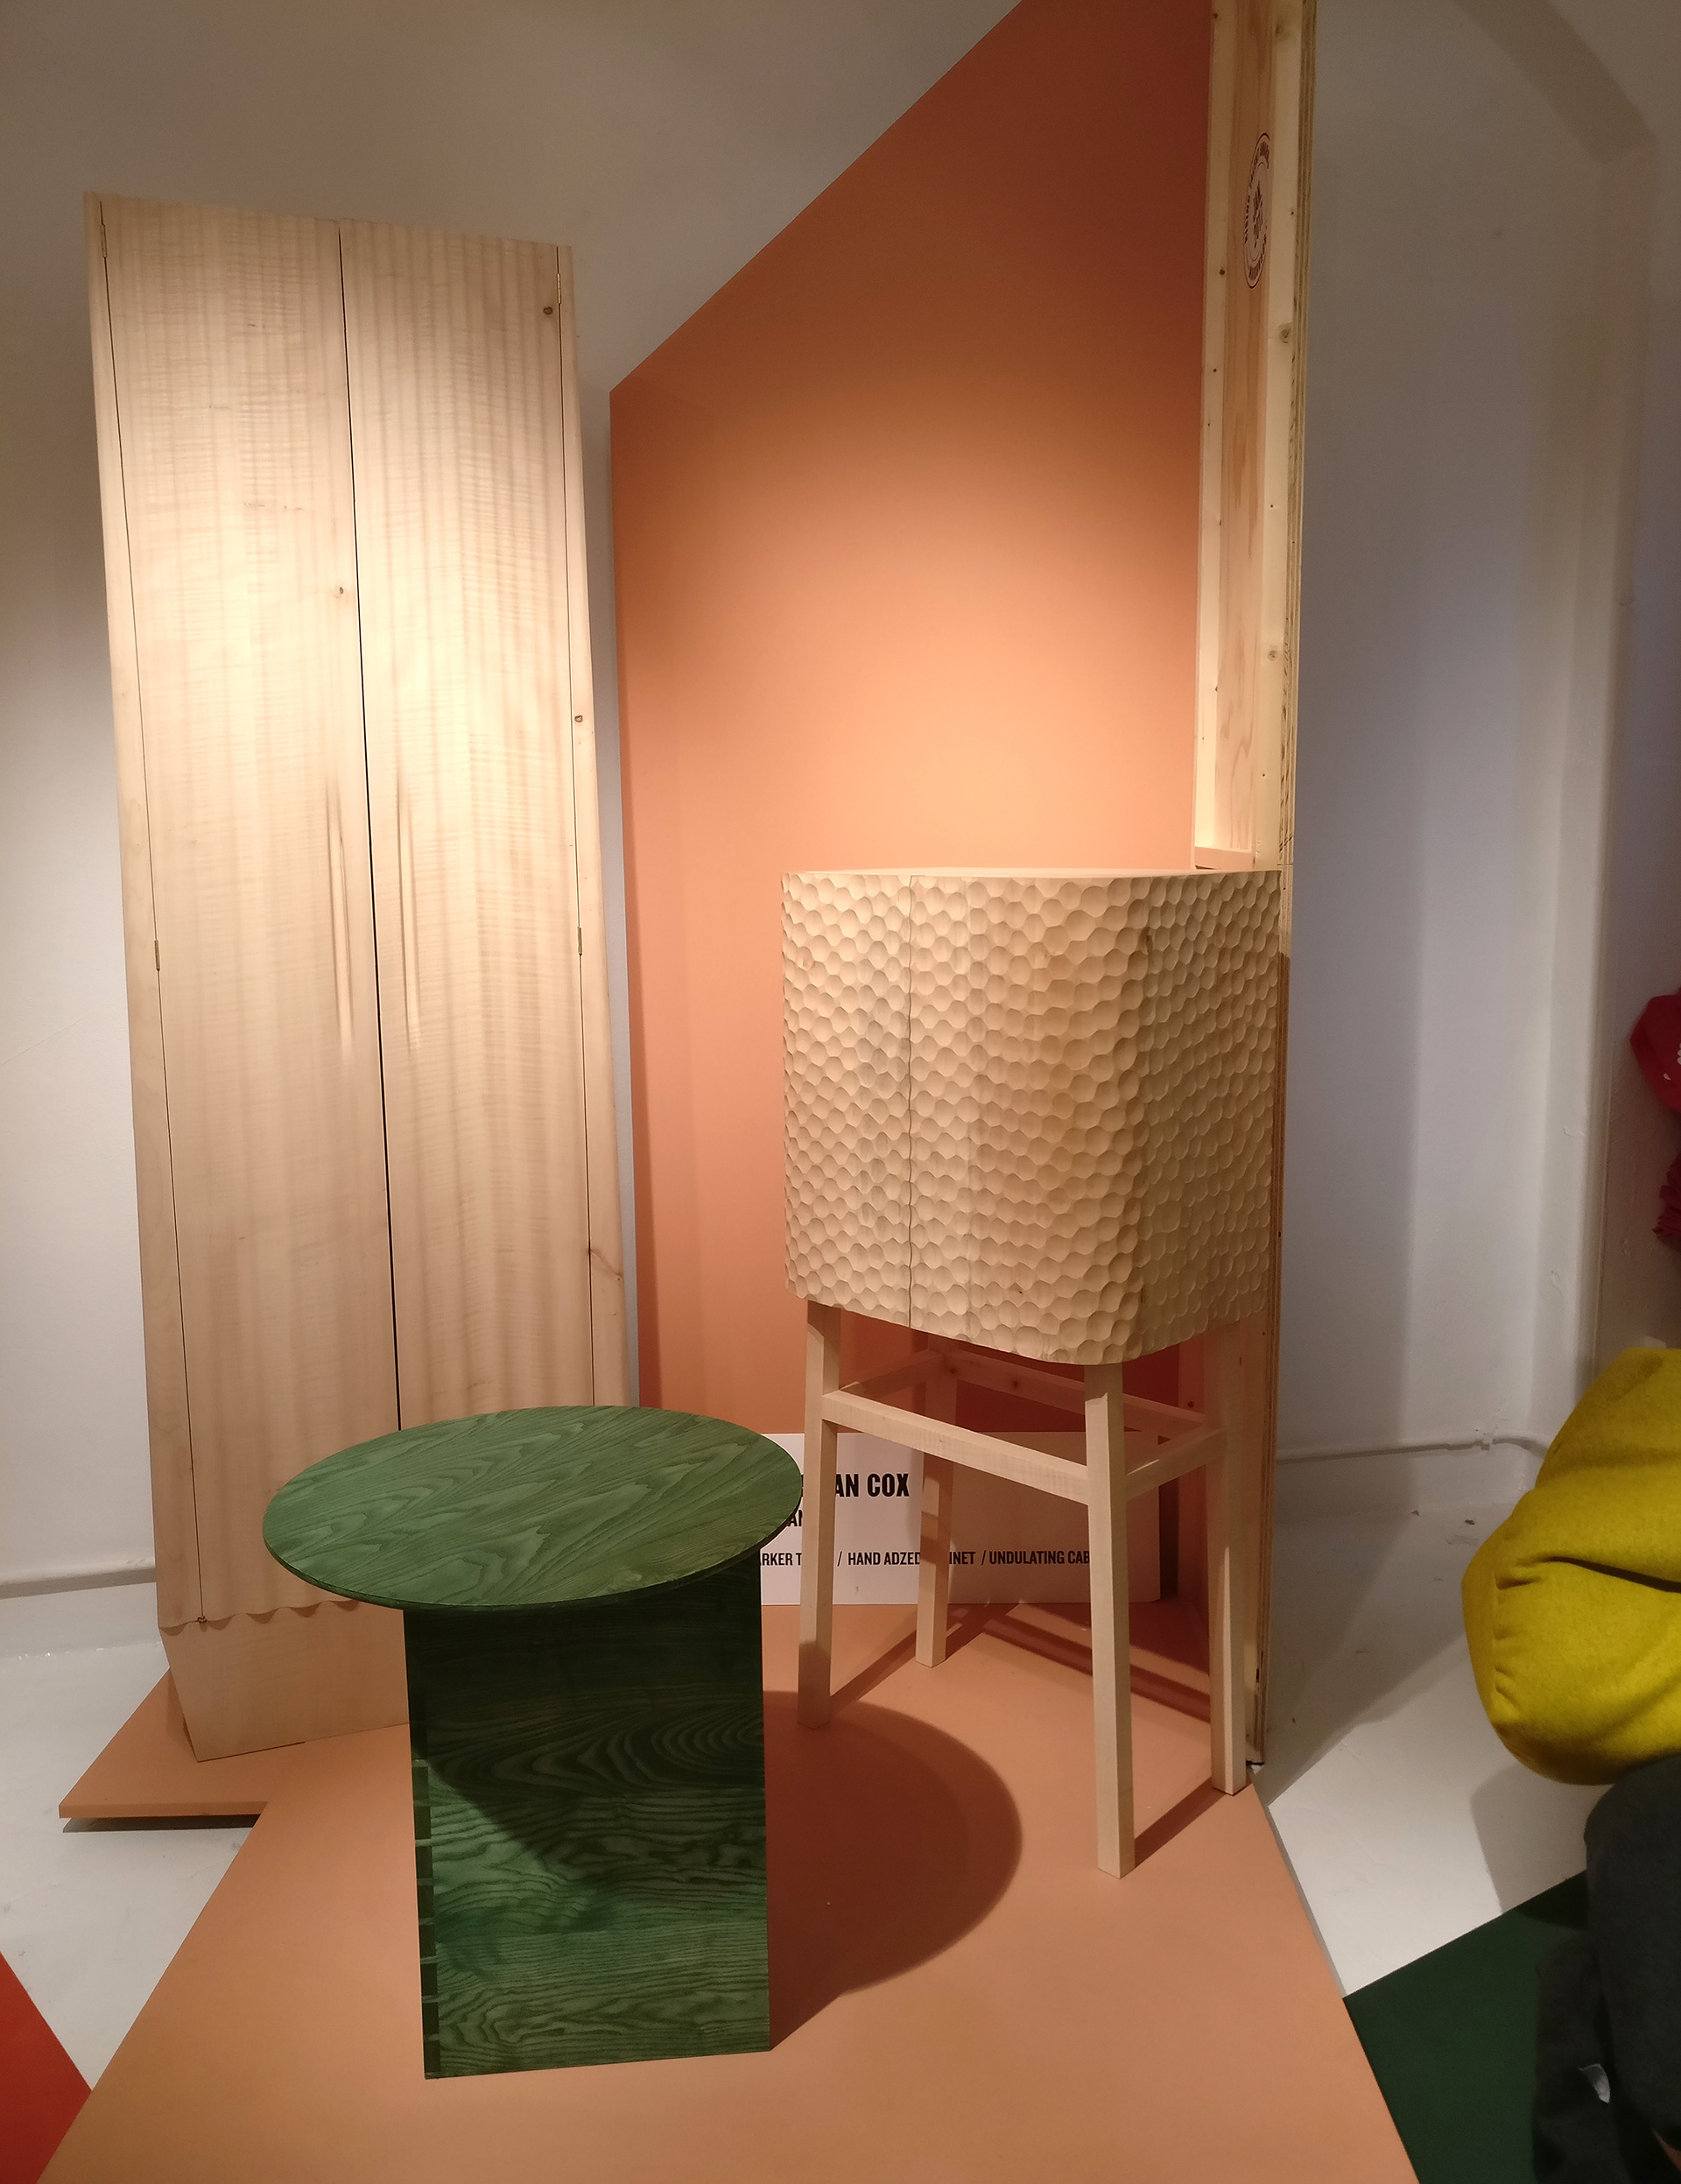 Cabinet by Sebastian Cox - the winner of Rising Talent Awards 2019 | Rossana Orlandi| Salone del Mobile 2019| Fuorisalone 2019| STIR